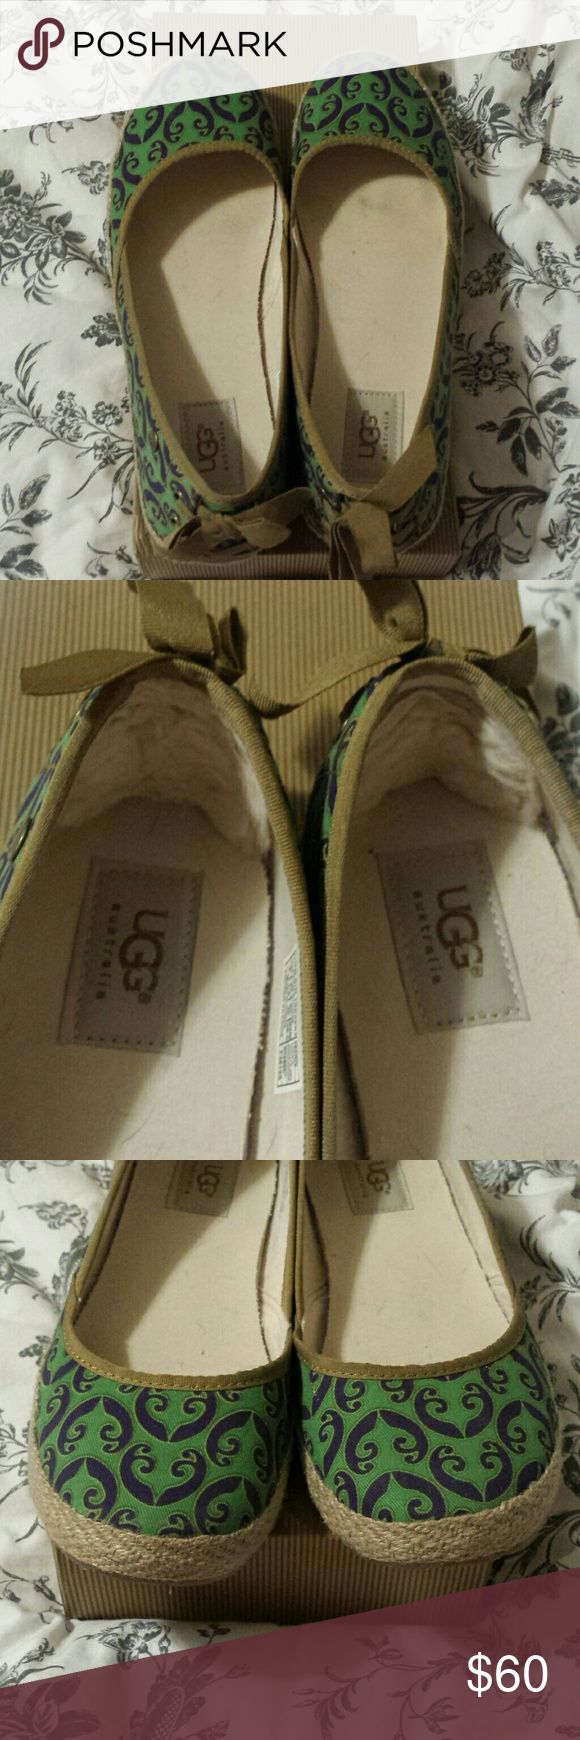 Ugg Flats. Indah Marrakech. NIB. Size 9. Kelly Green with Purple Pattern. Ugg Shearling at inner heel. Ribbon lace up and bow at outer heel.  I wear a 9.5 in other shoes and usually a 9 in Uggs. These fit like regular shoes, so probably a true 9.  I really wish they had worked. I love them!!!! UGG Shoes Espadrilles